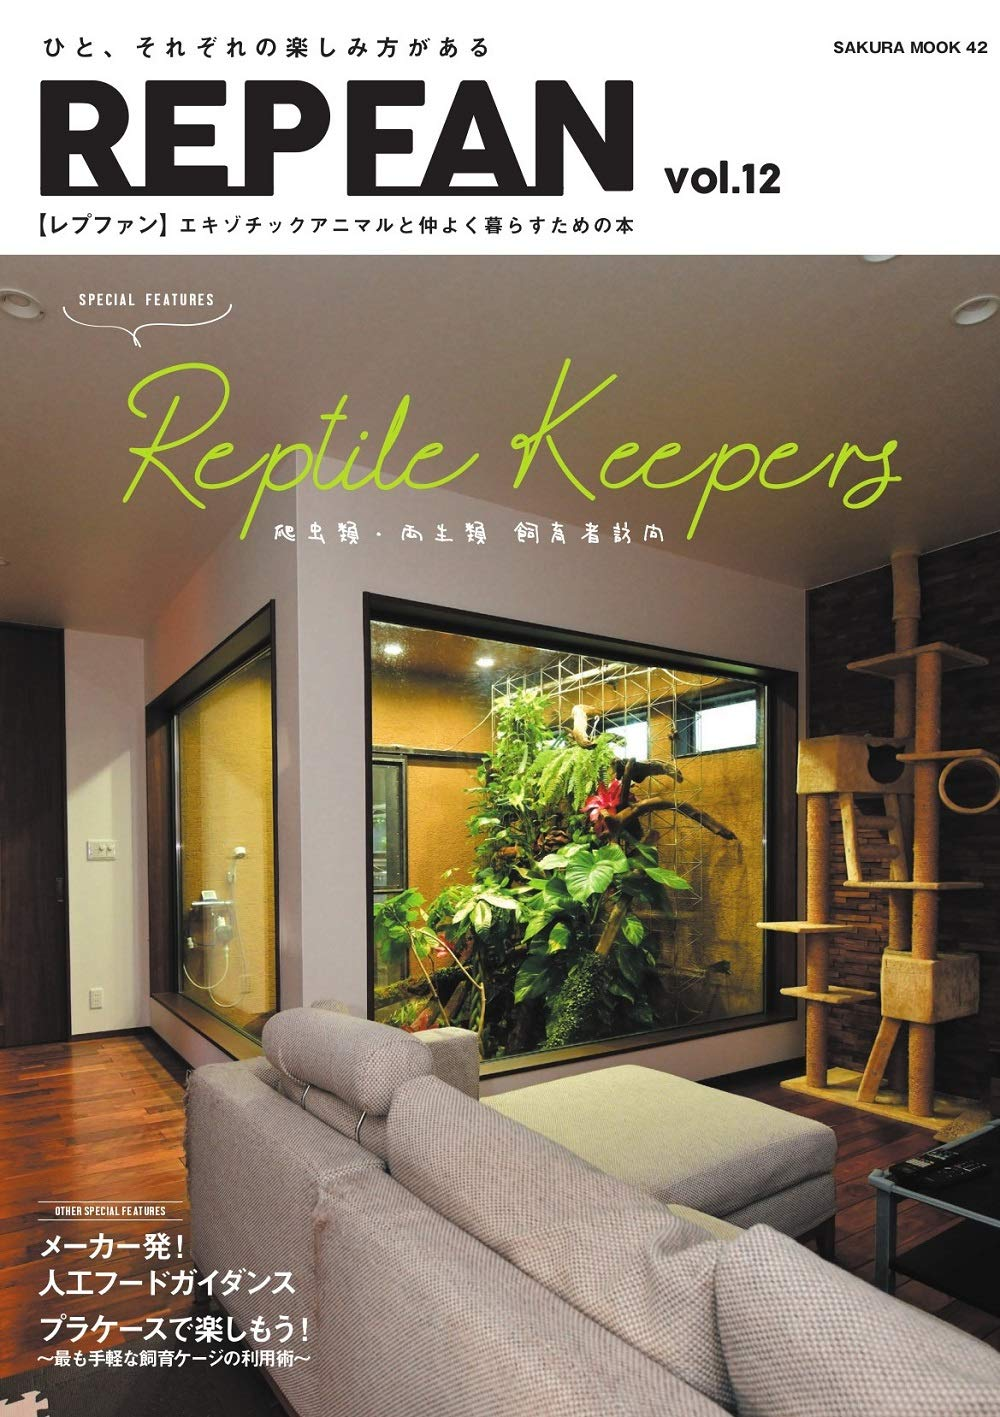 REP FAN レプファン Vol.12 Reptile Keepery